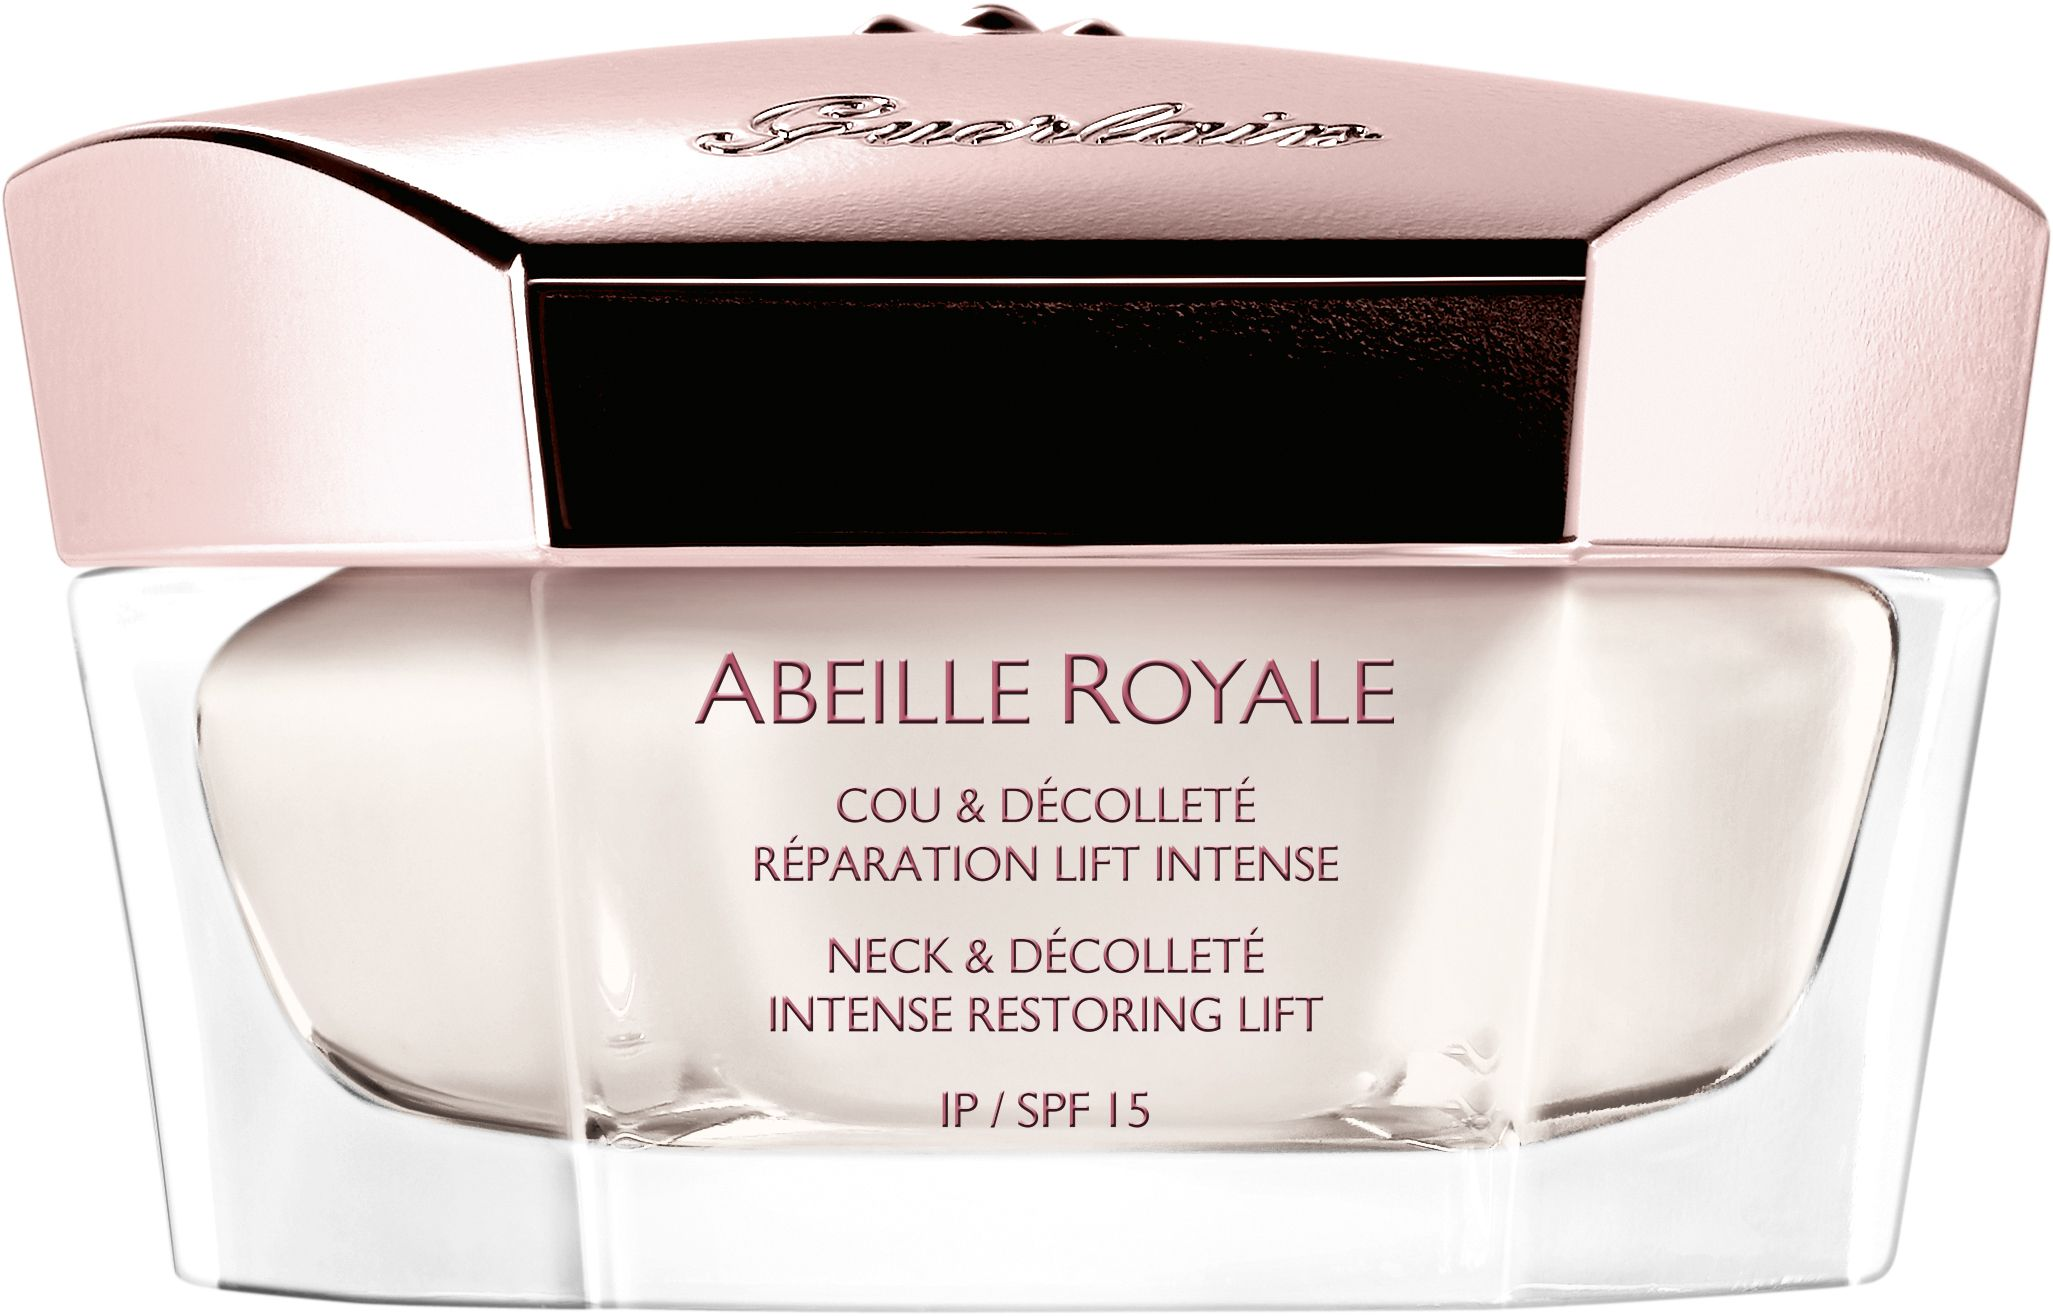 Abeille Royale Neck & Decollete Cream